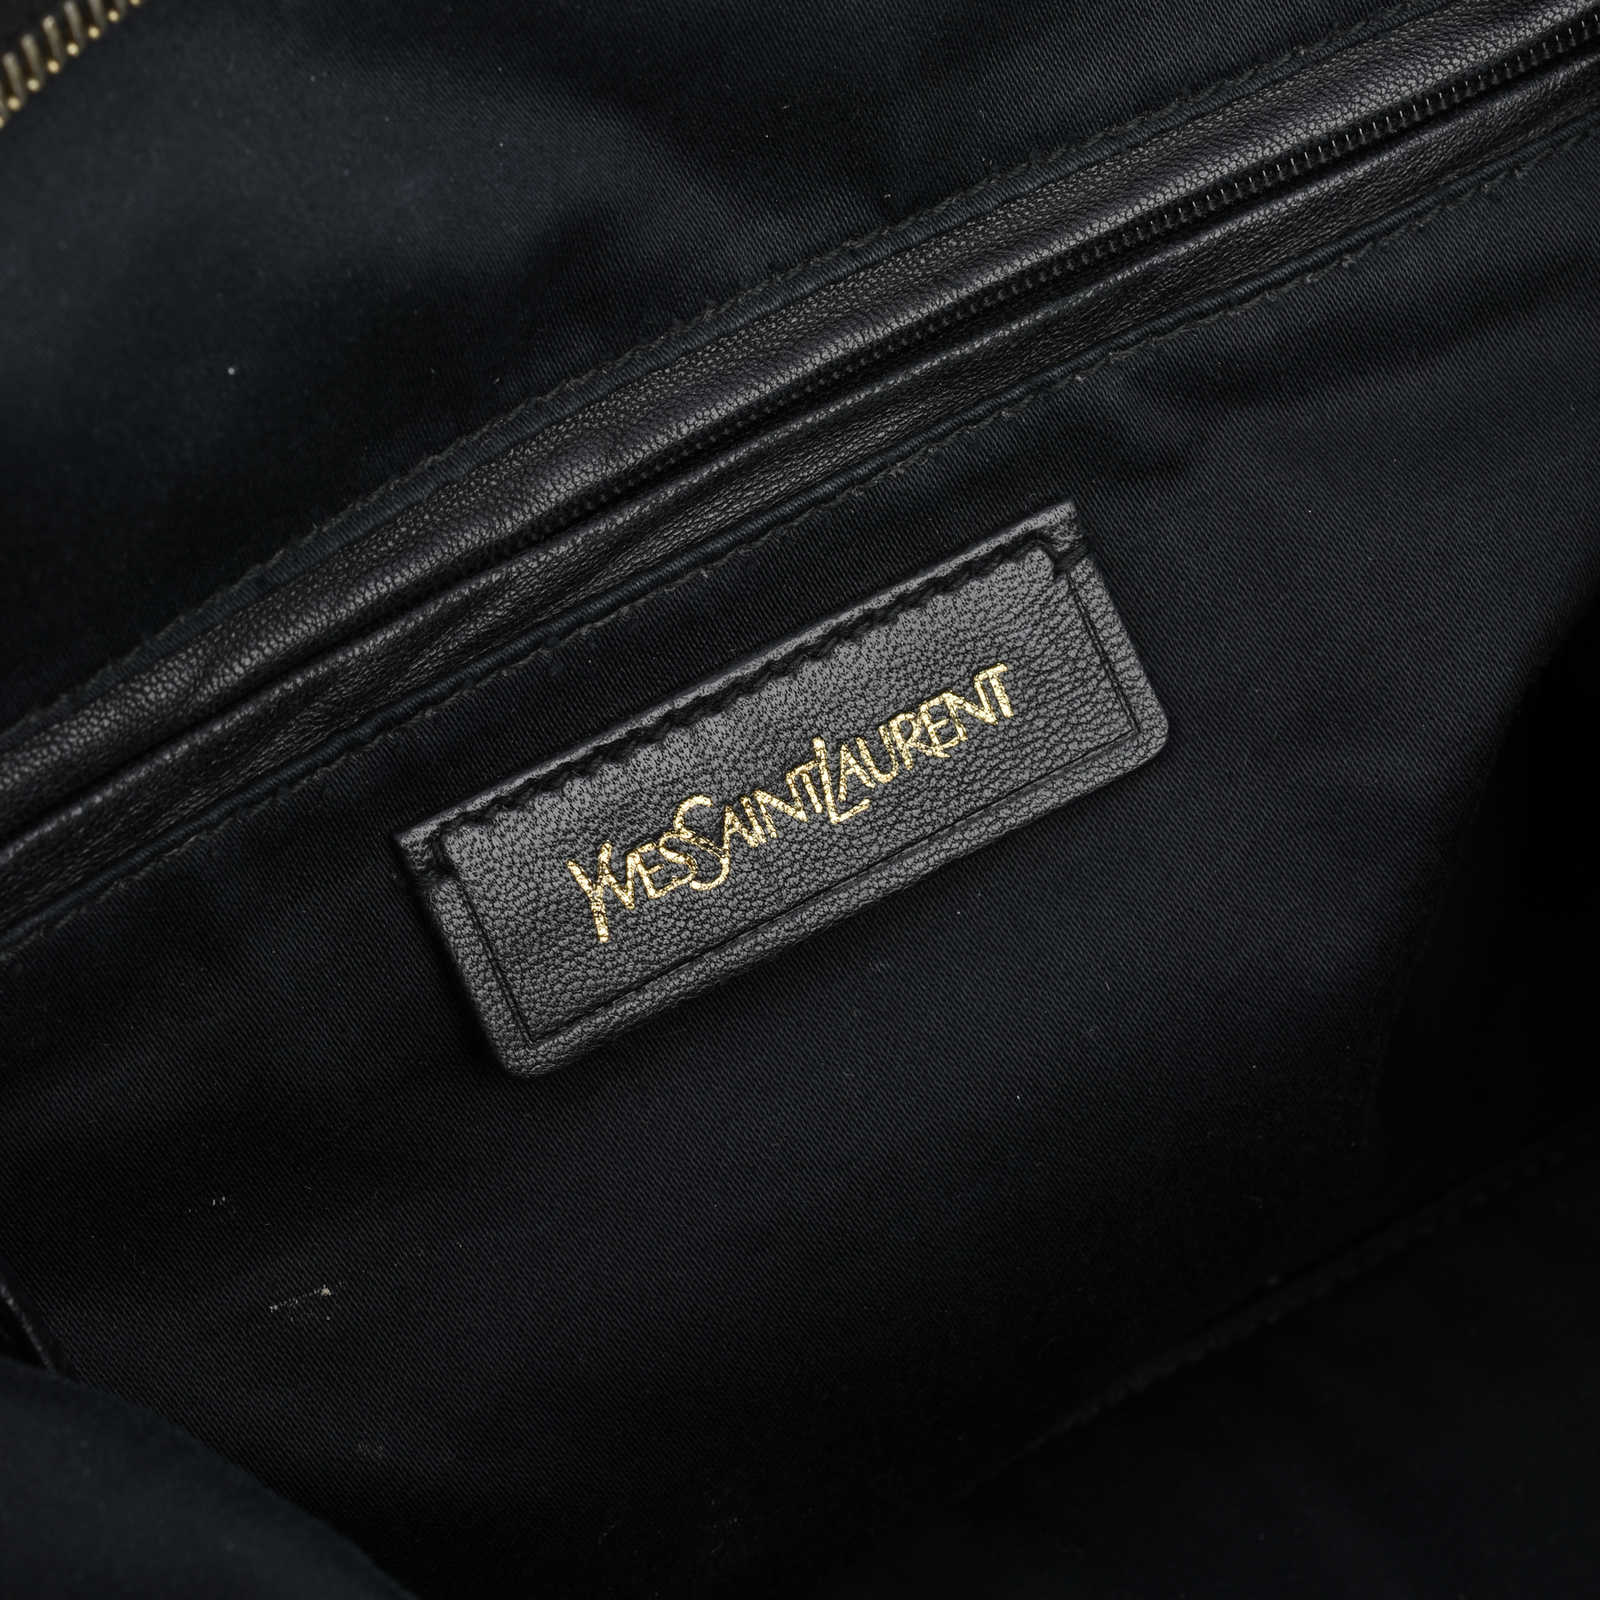 d71b5ce136c5 ... Authentic Second Hand Yves Saint Laurent Easy Y Bag (PSS-425-00001)